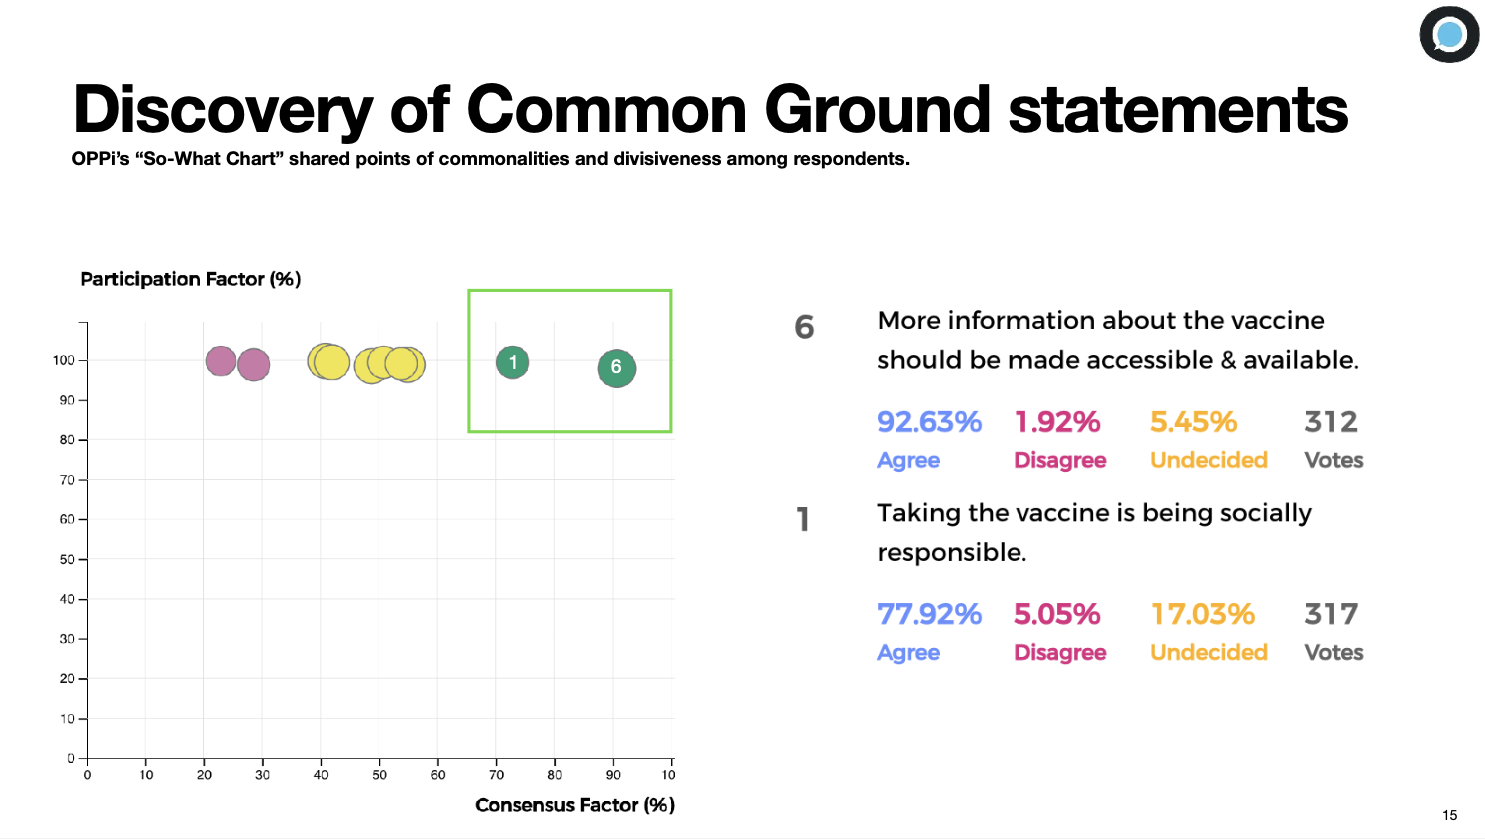 A screenshot of OPPi's analytics dashboard, showing two common ground statements from the survey ran for the Youtube series I Have a Question, statement six, more information about the vaccine should be make accessible and available, with a 92.63% consensus, and statement one, taking the vaccine is being socially responsible, with a 77.92% consensus.